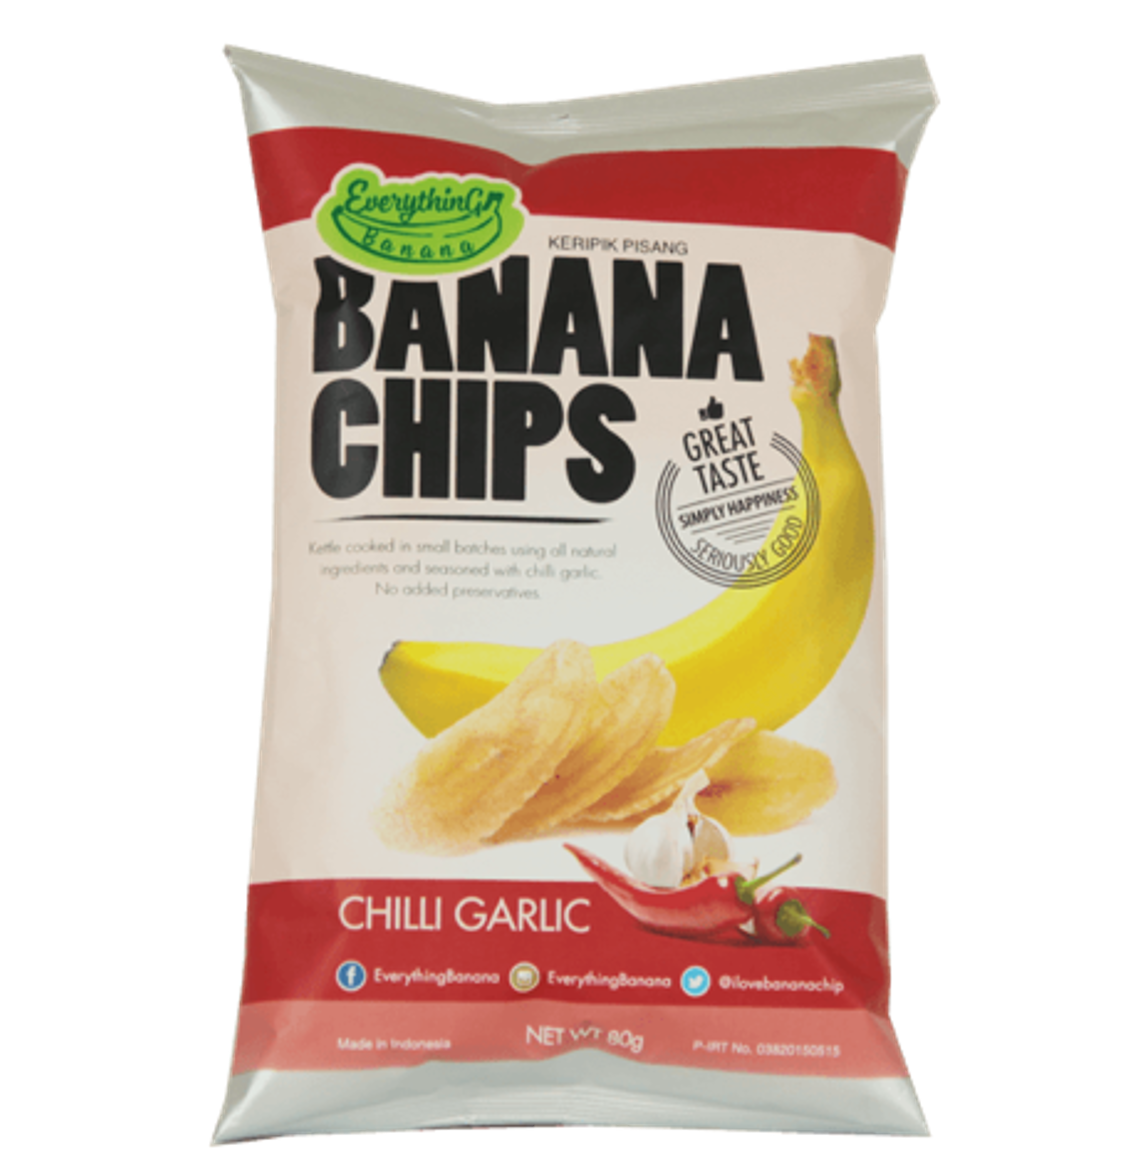 Everything Banana Chips - Garlic Chilli, 80g